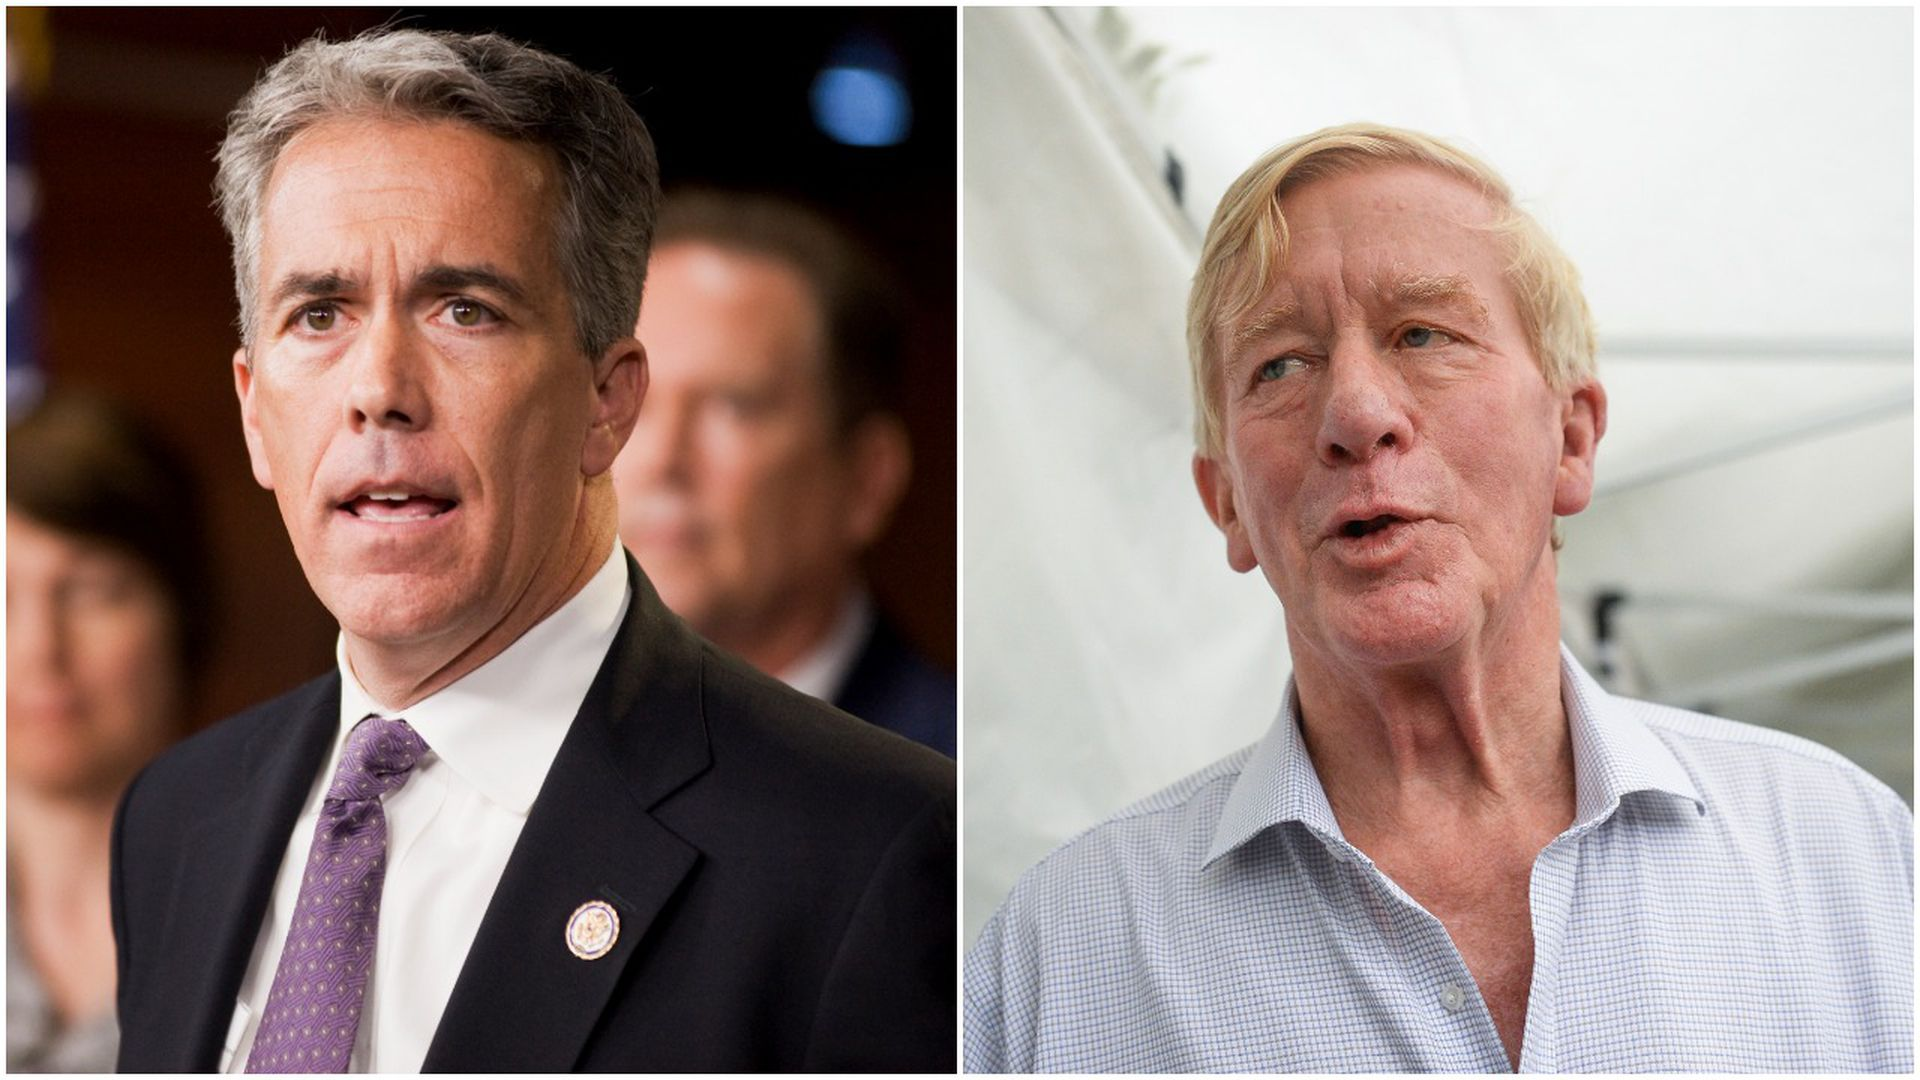 This image is a two-way split screen of Joe Walsh and Bill Weld.